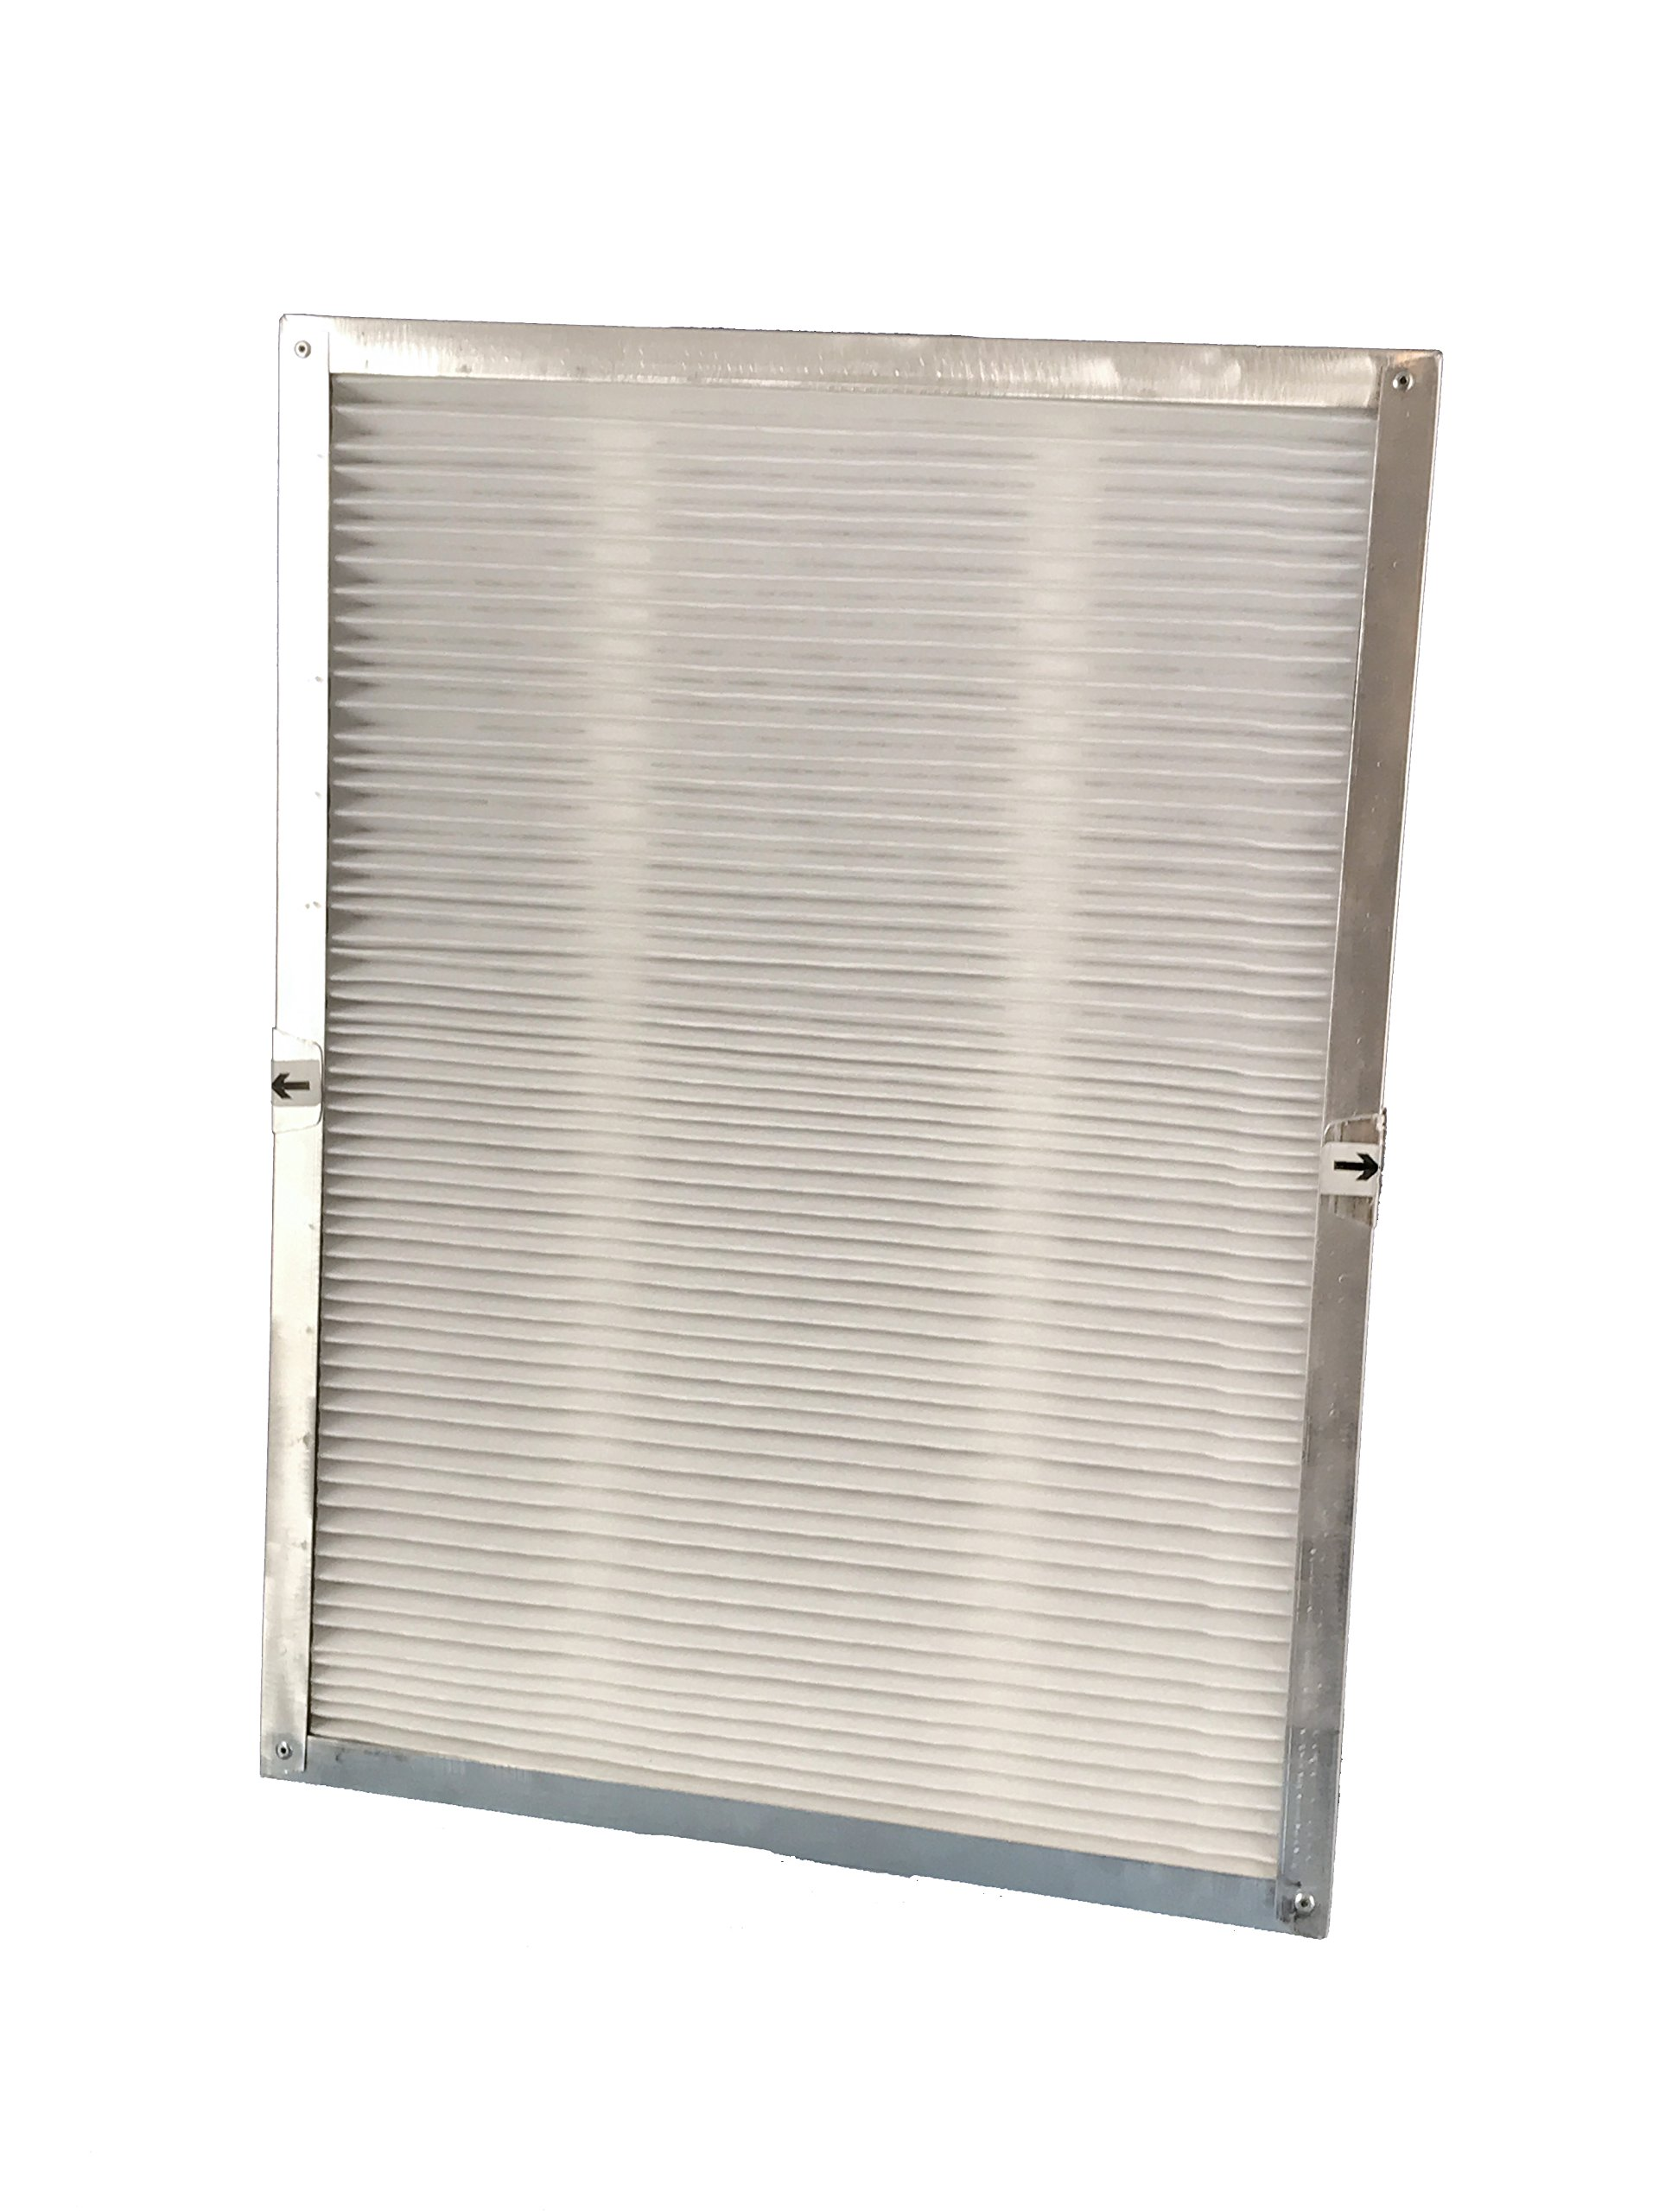 21x23x1 Accumulair Refillable Allergen Air & Furnace Filter with Reusable/Washable Frame